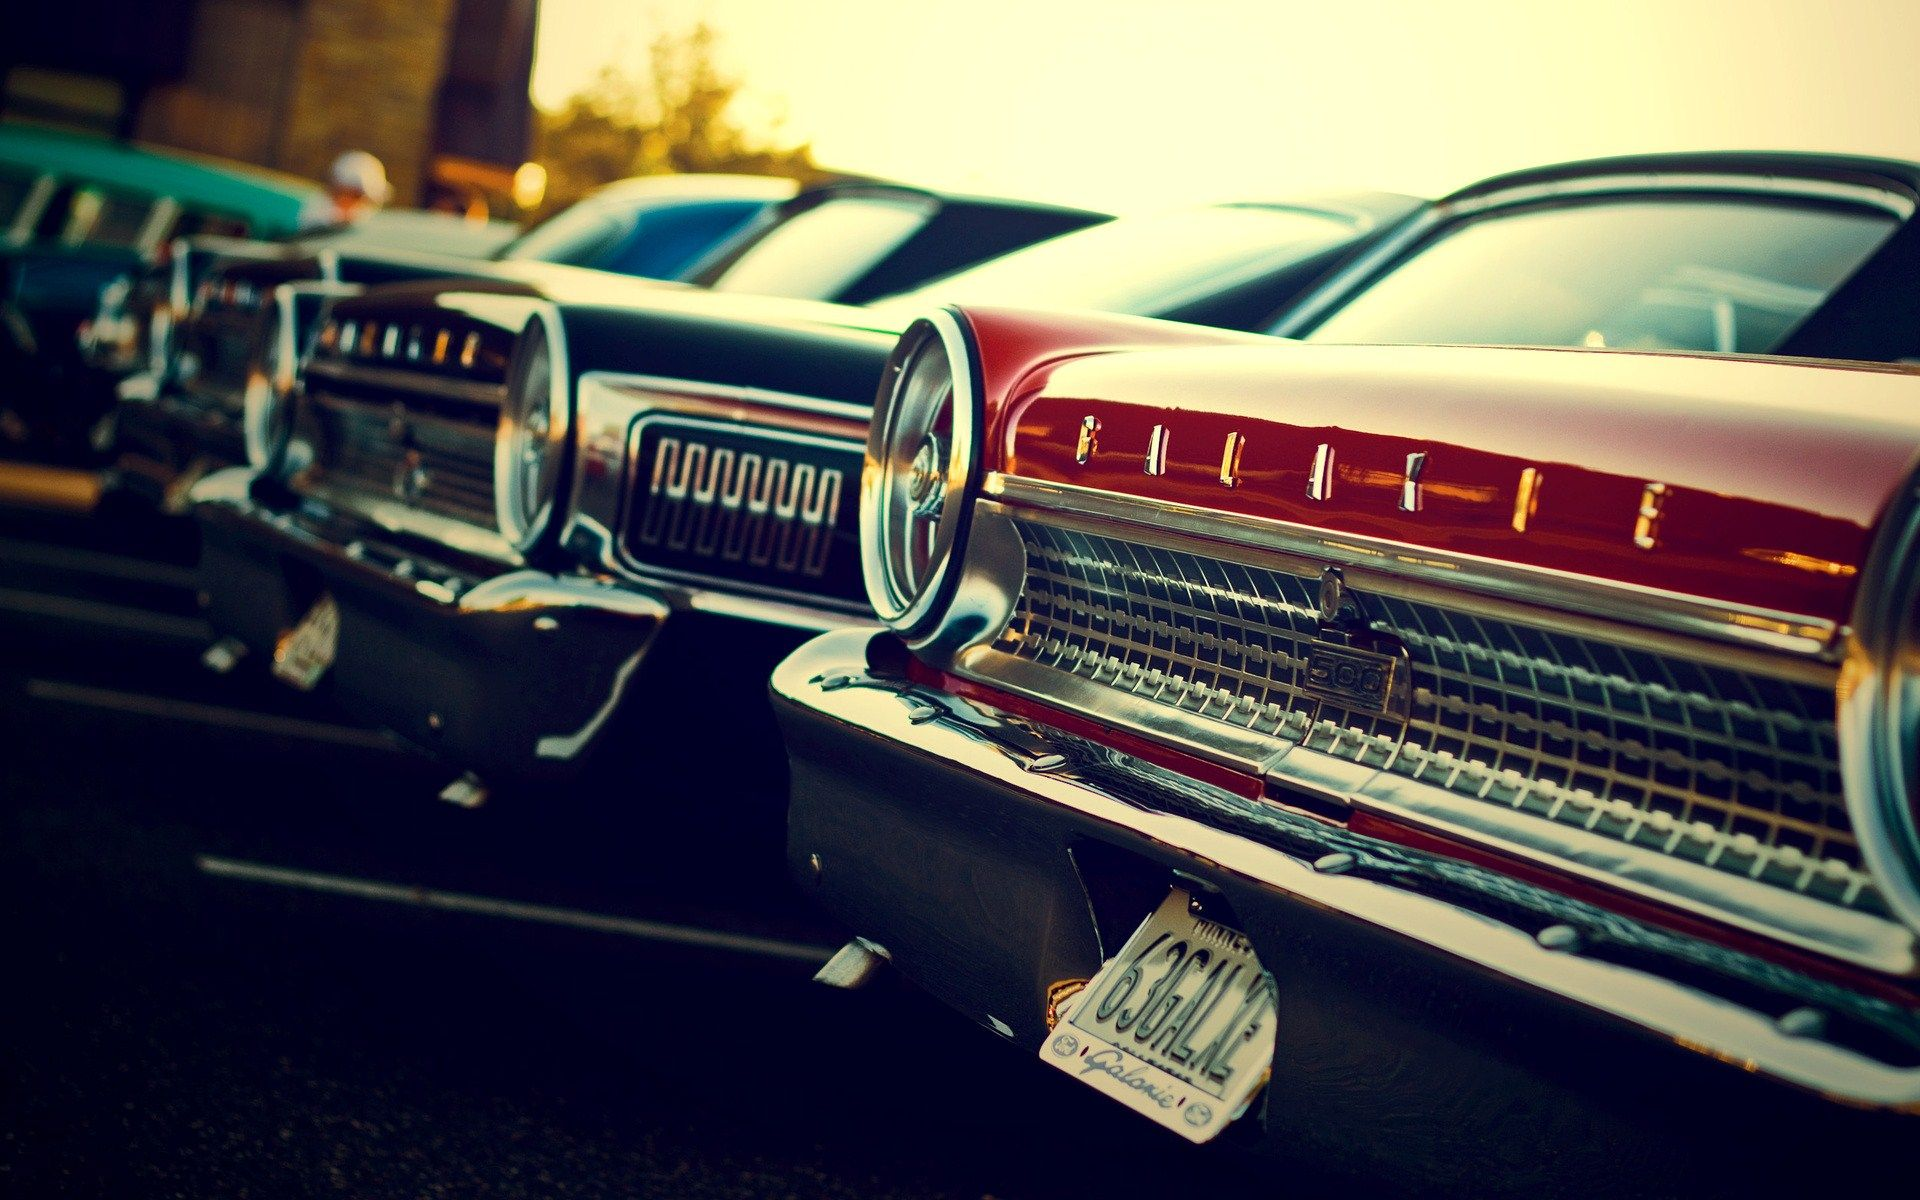 Vintage Classic Car Wallpapers Hd | classic cars | Pinterest ...